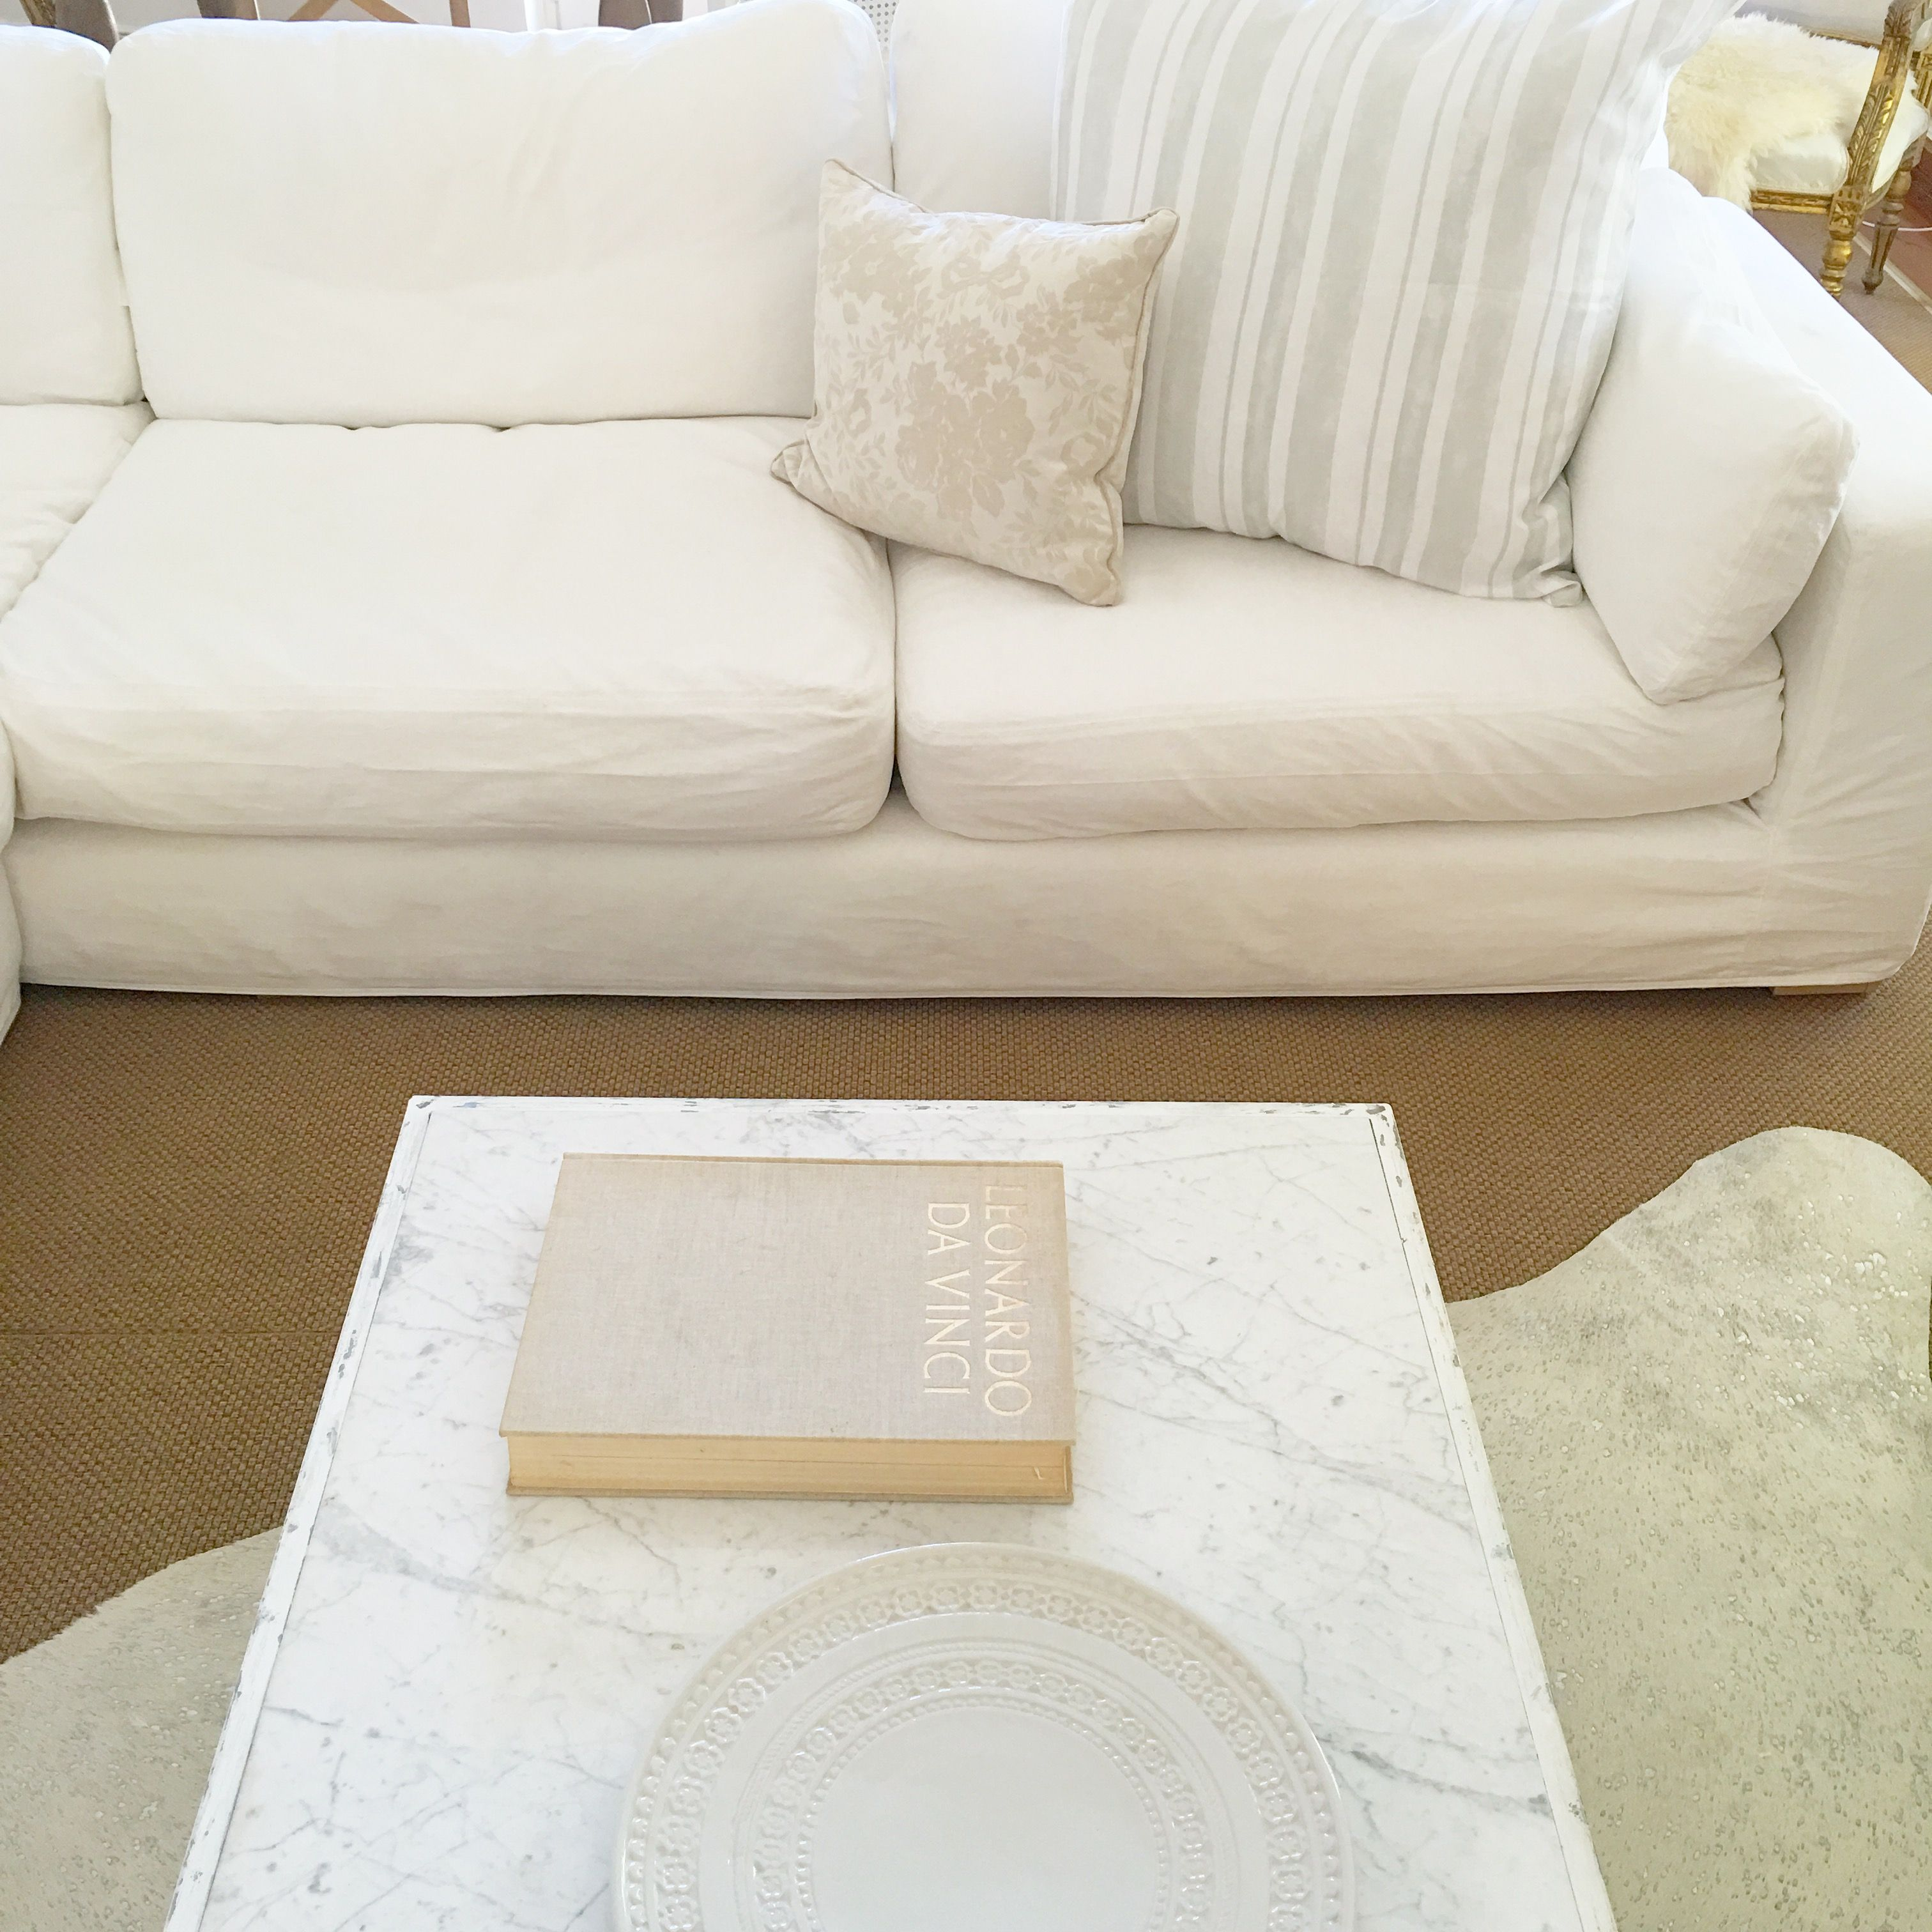 shabby chic couture furniture. SoHo Sectional Sofa Accessorized In All Rachel Ashwell Shabby Chic Couture. Carrara Marble Table Manufactured Couture Furniture O